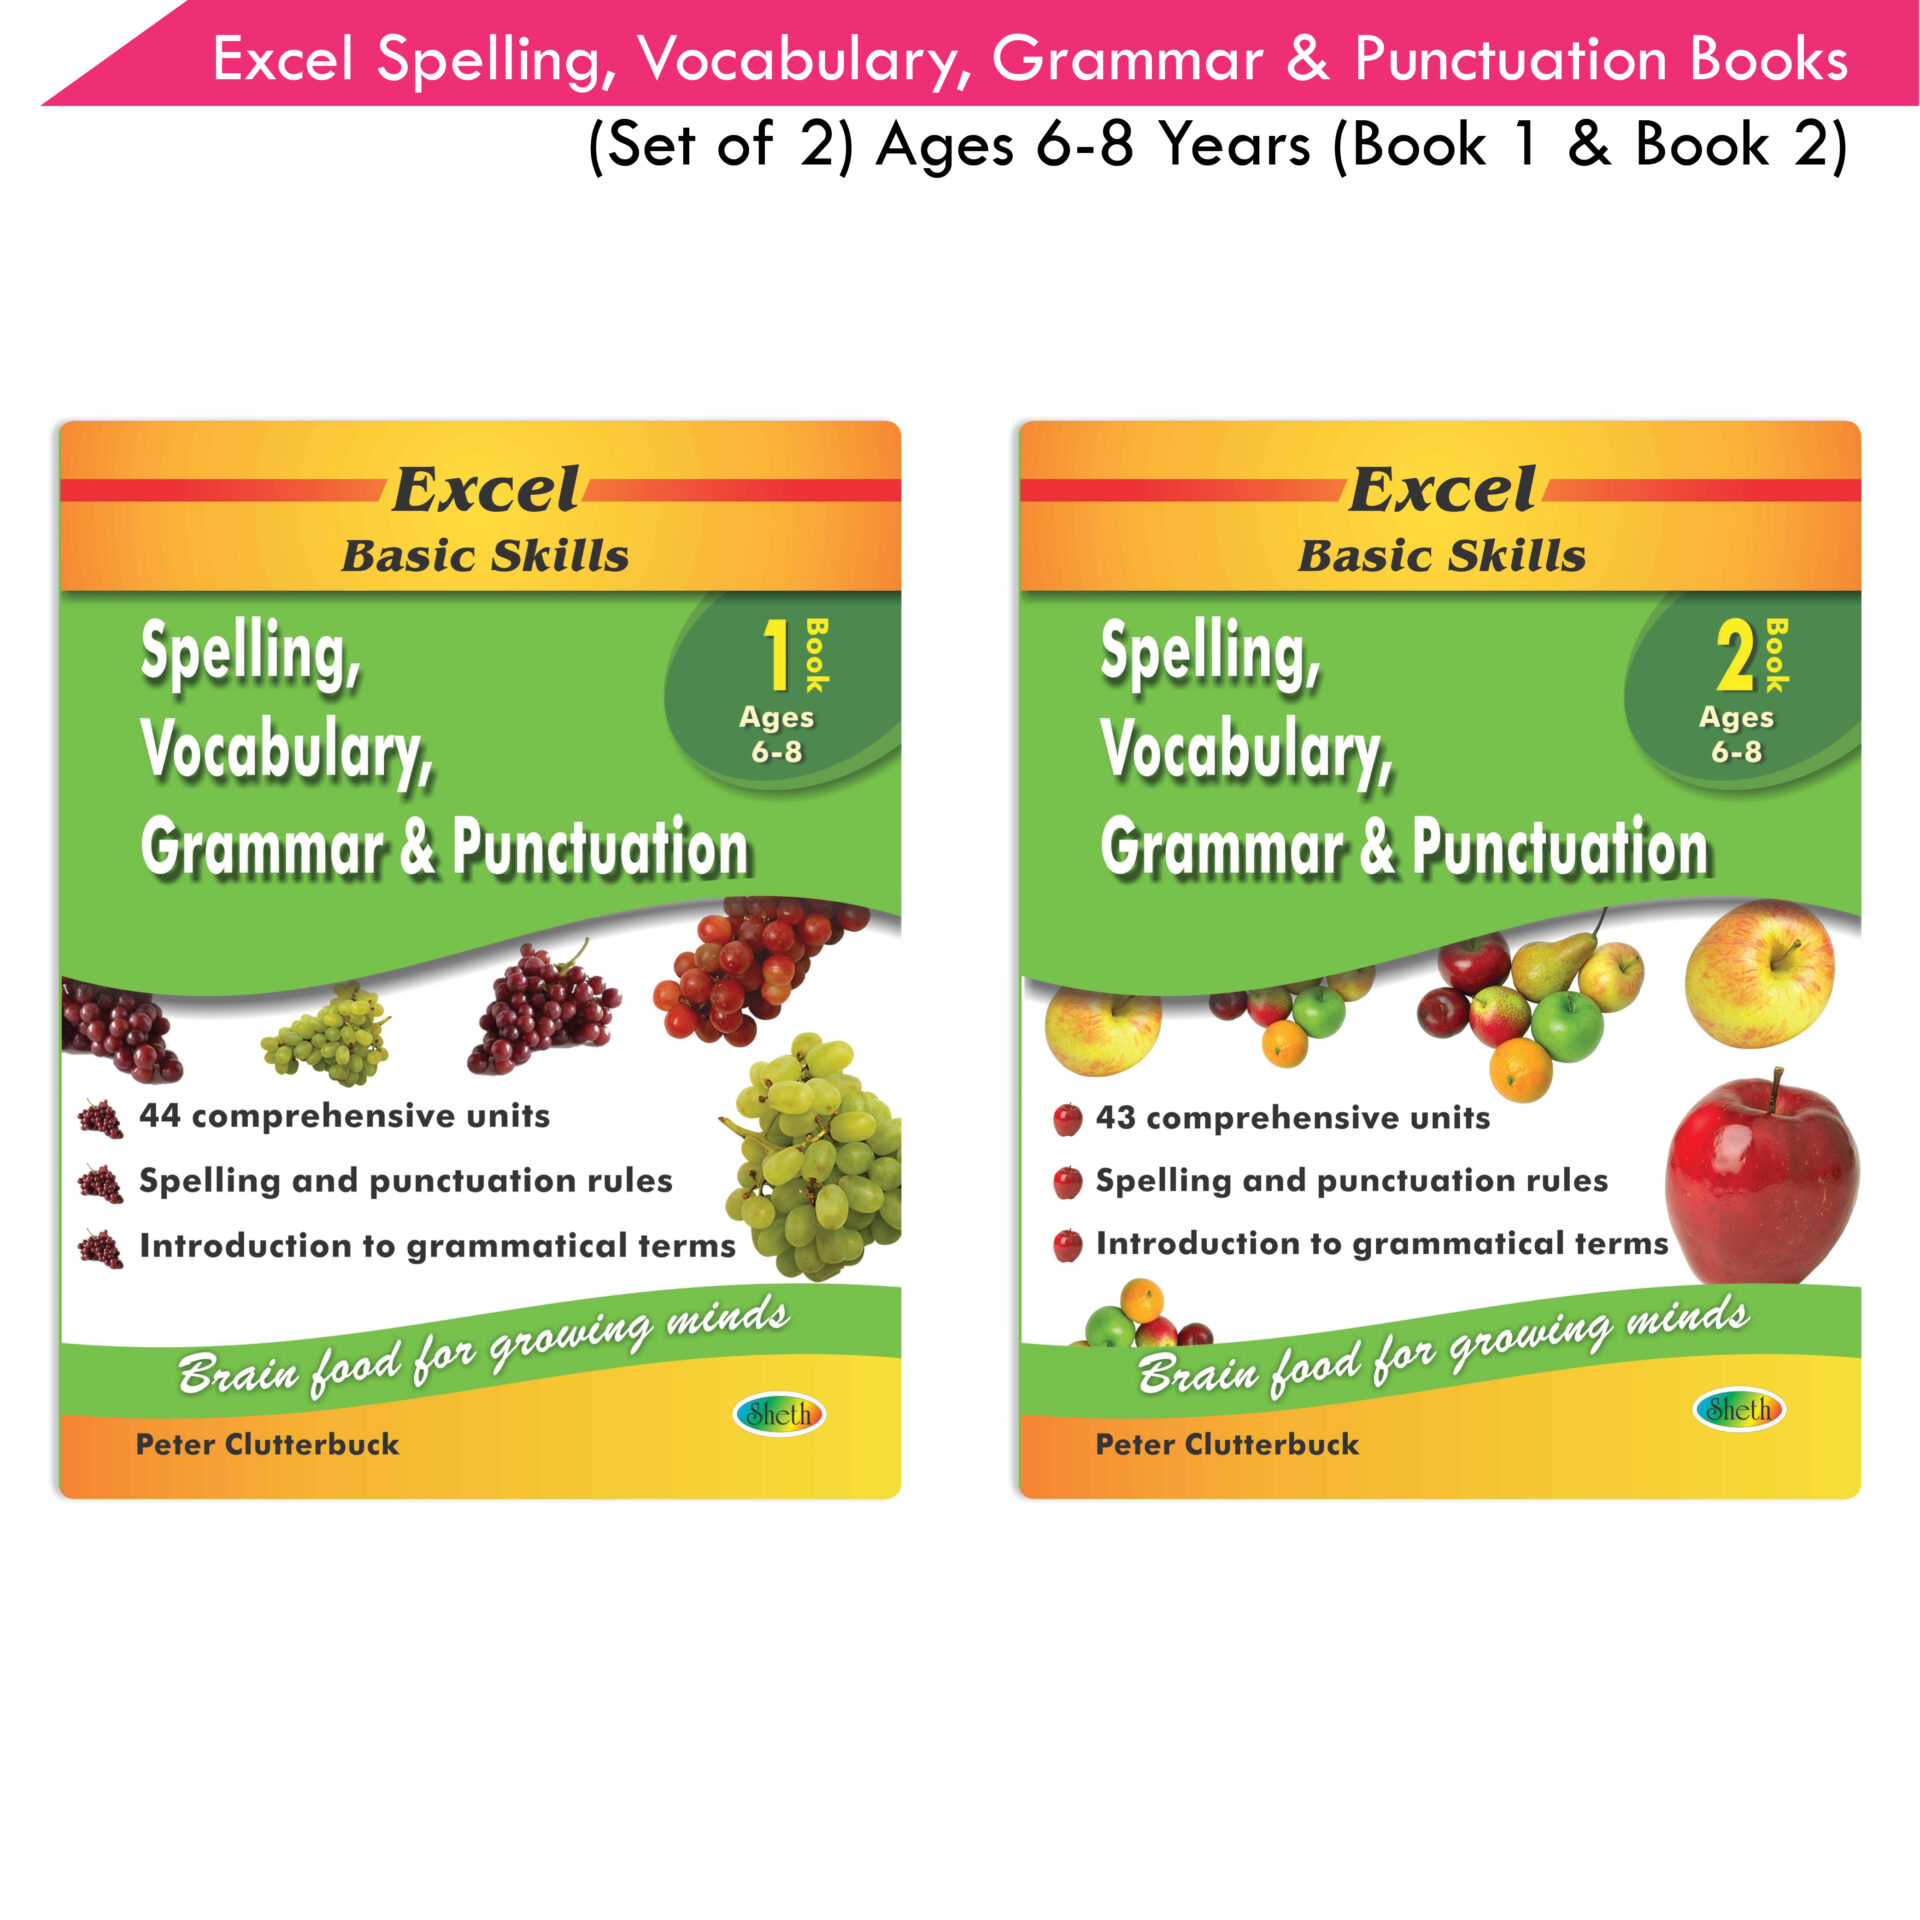 Excel Basic Skills Spelling Vocabulary Grammar and Punctuation Book Set Ages 6 8 Set of 2 1